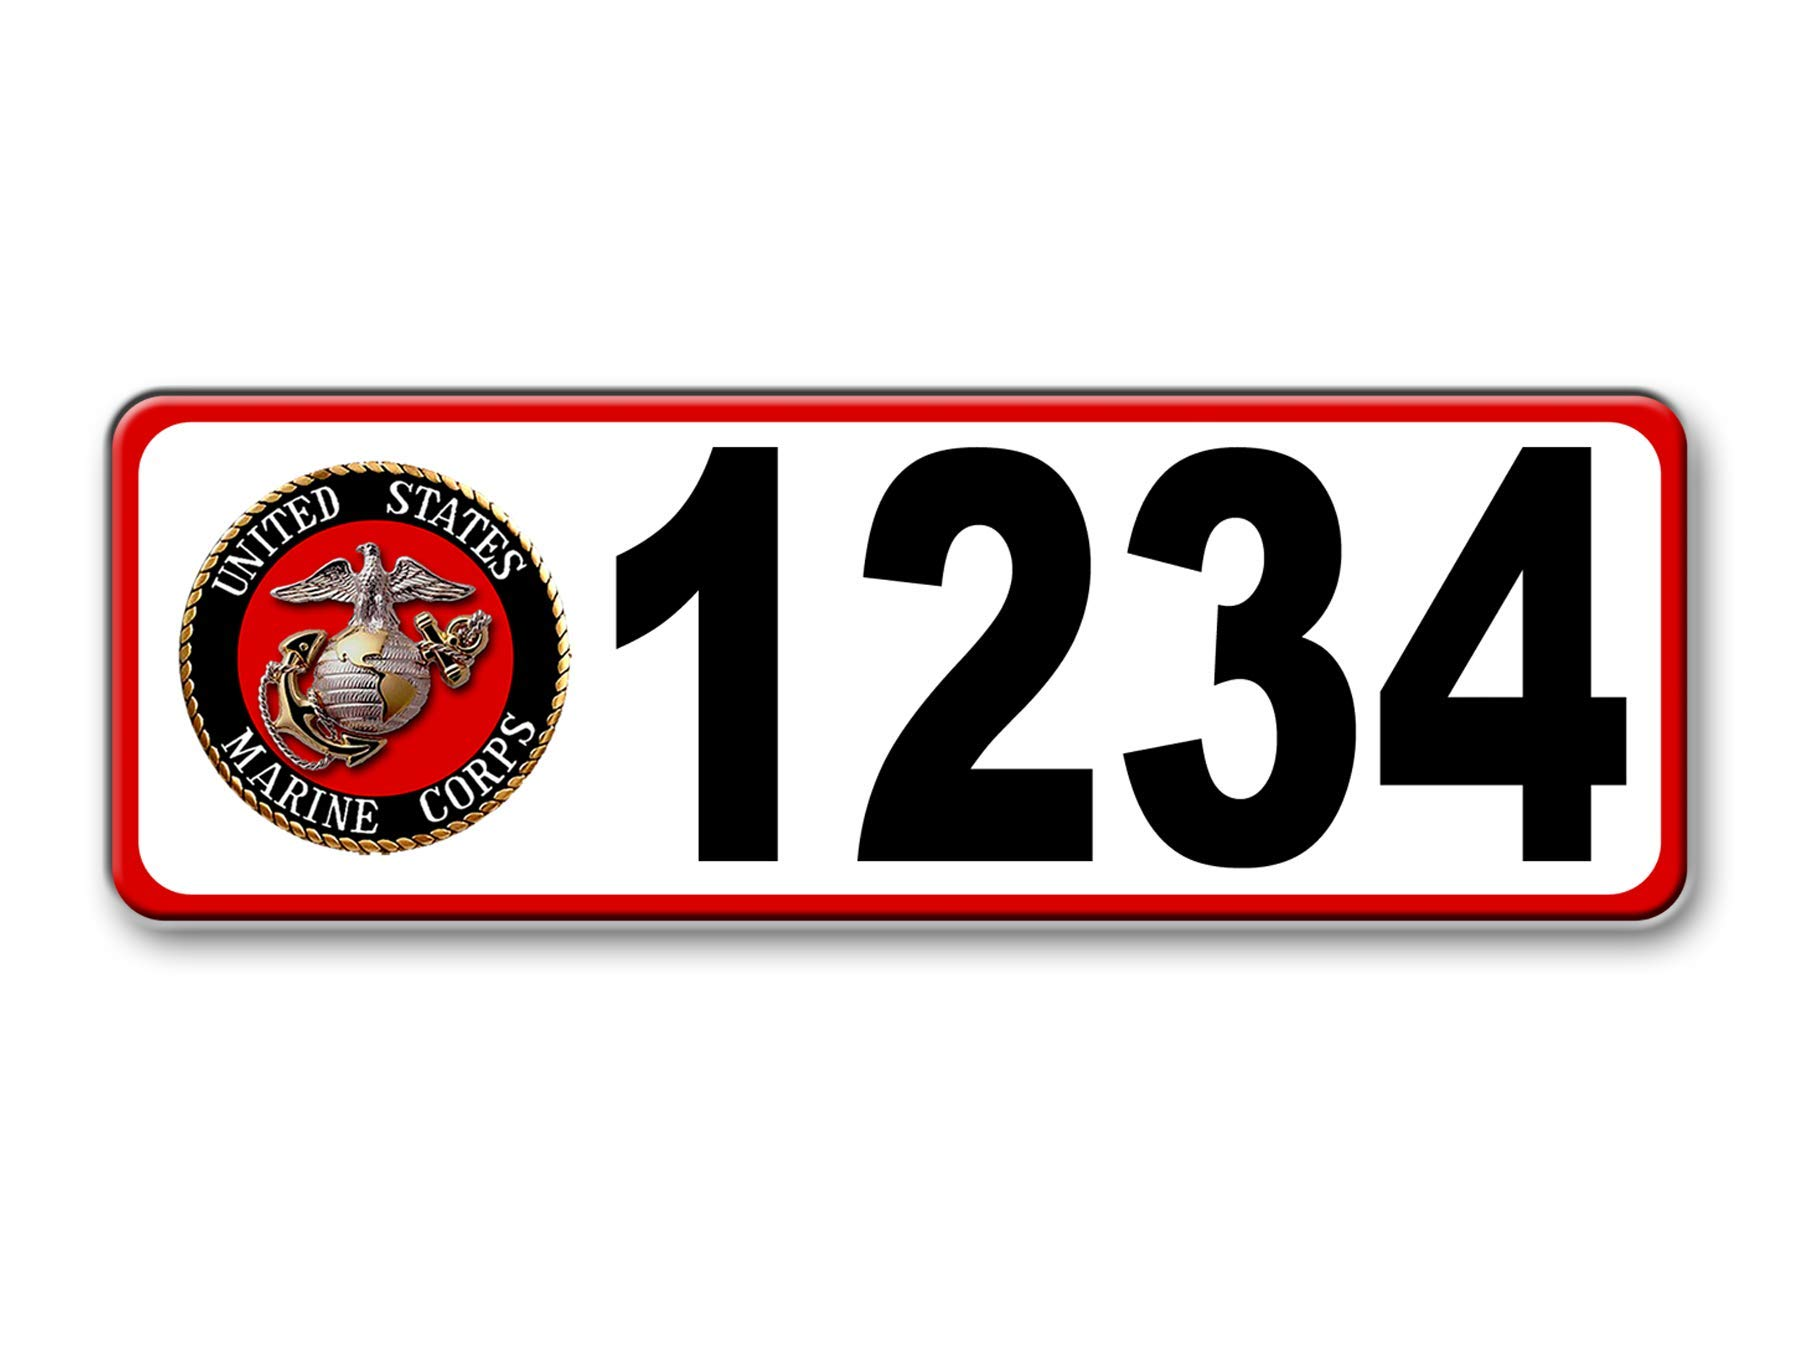 Marine Corps Curb-Wrap, Reflective self-stick curb address